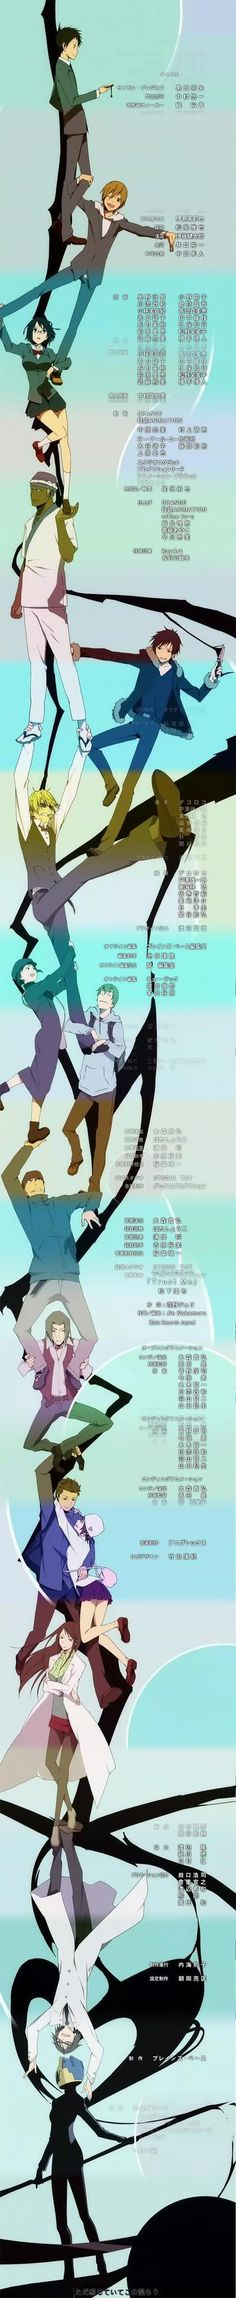 This is the original tower thing. Just a Durarara thing that found a place in everything else's fan art.